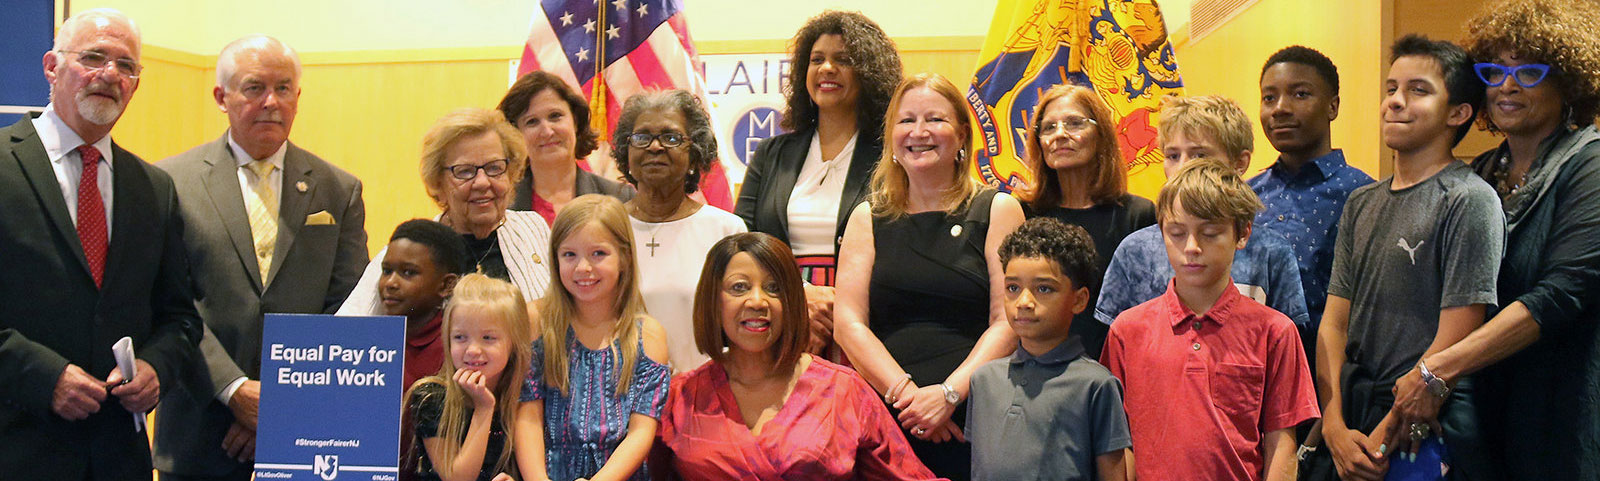 Acting Governor Sheila Y. Oliver with group of people